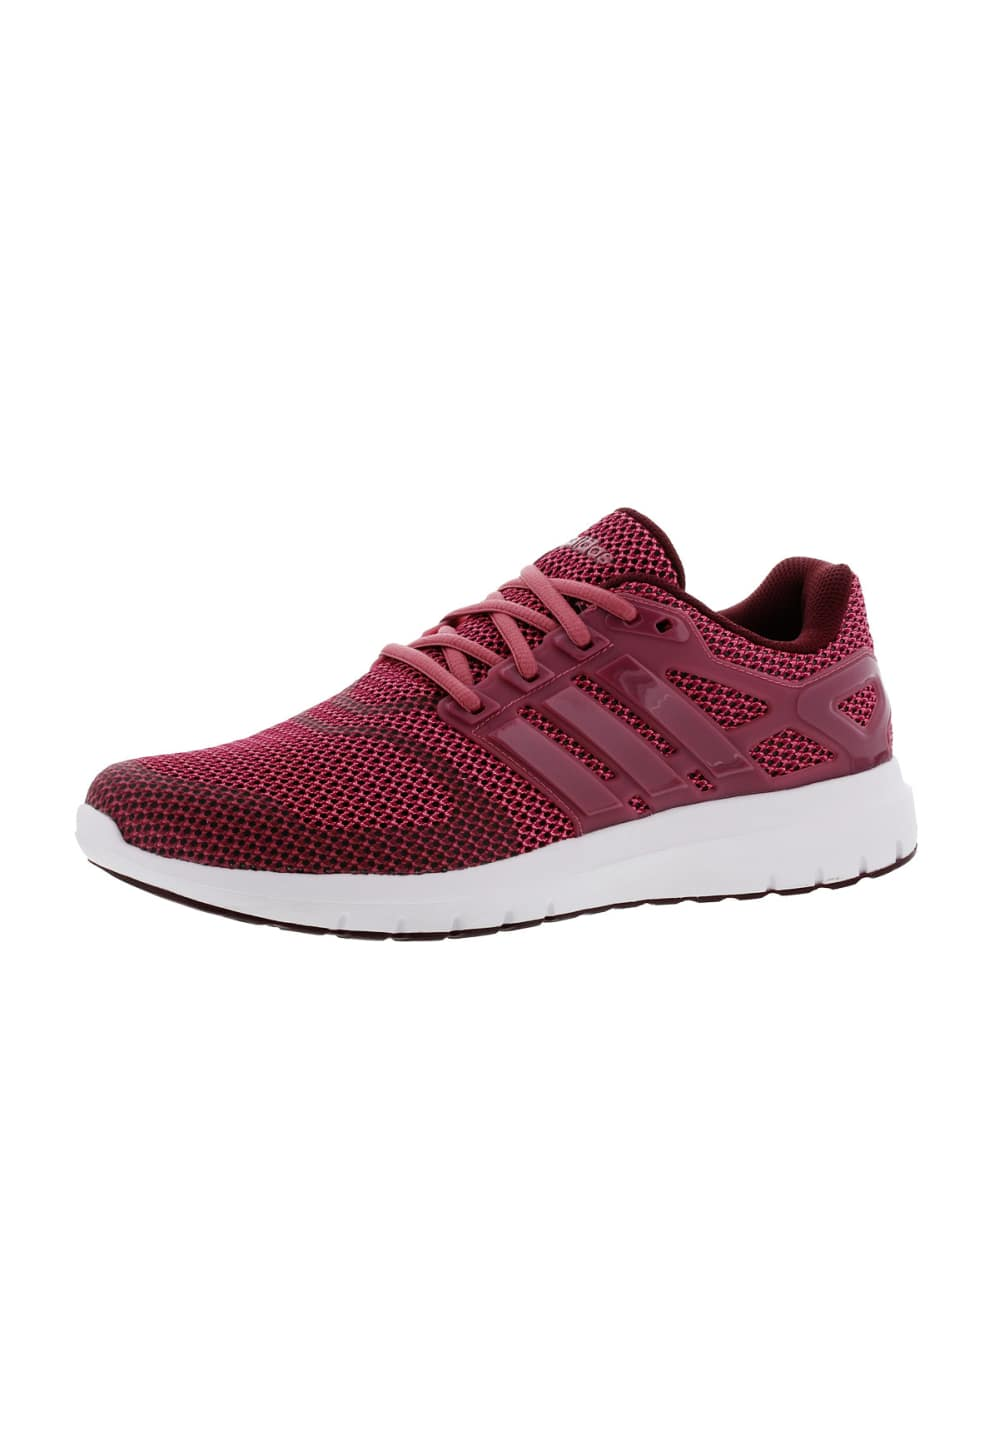 Next. -60%. adidas. Energy Cloud V - Running shoes ... 361e7d333